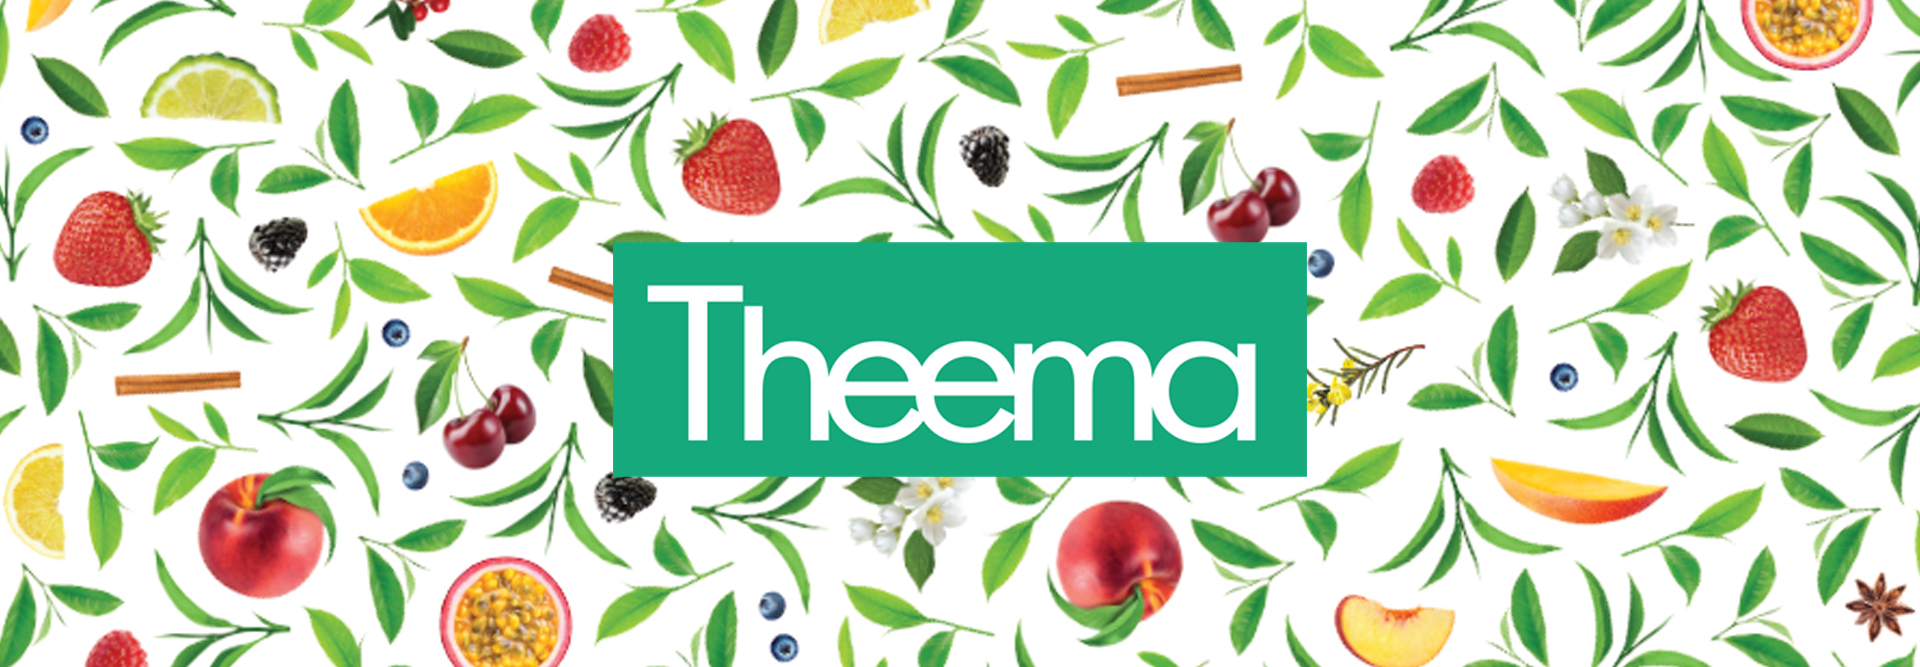 Header Theema thee.jpg